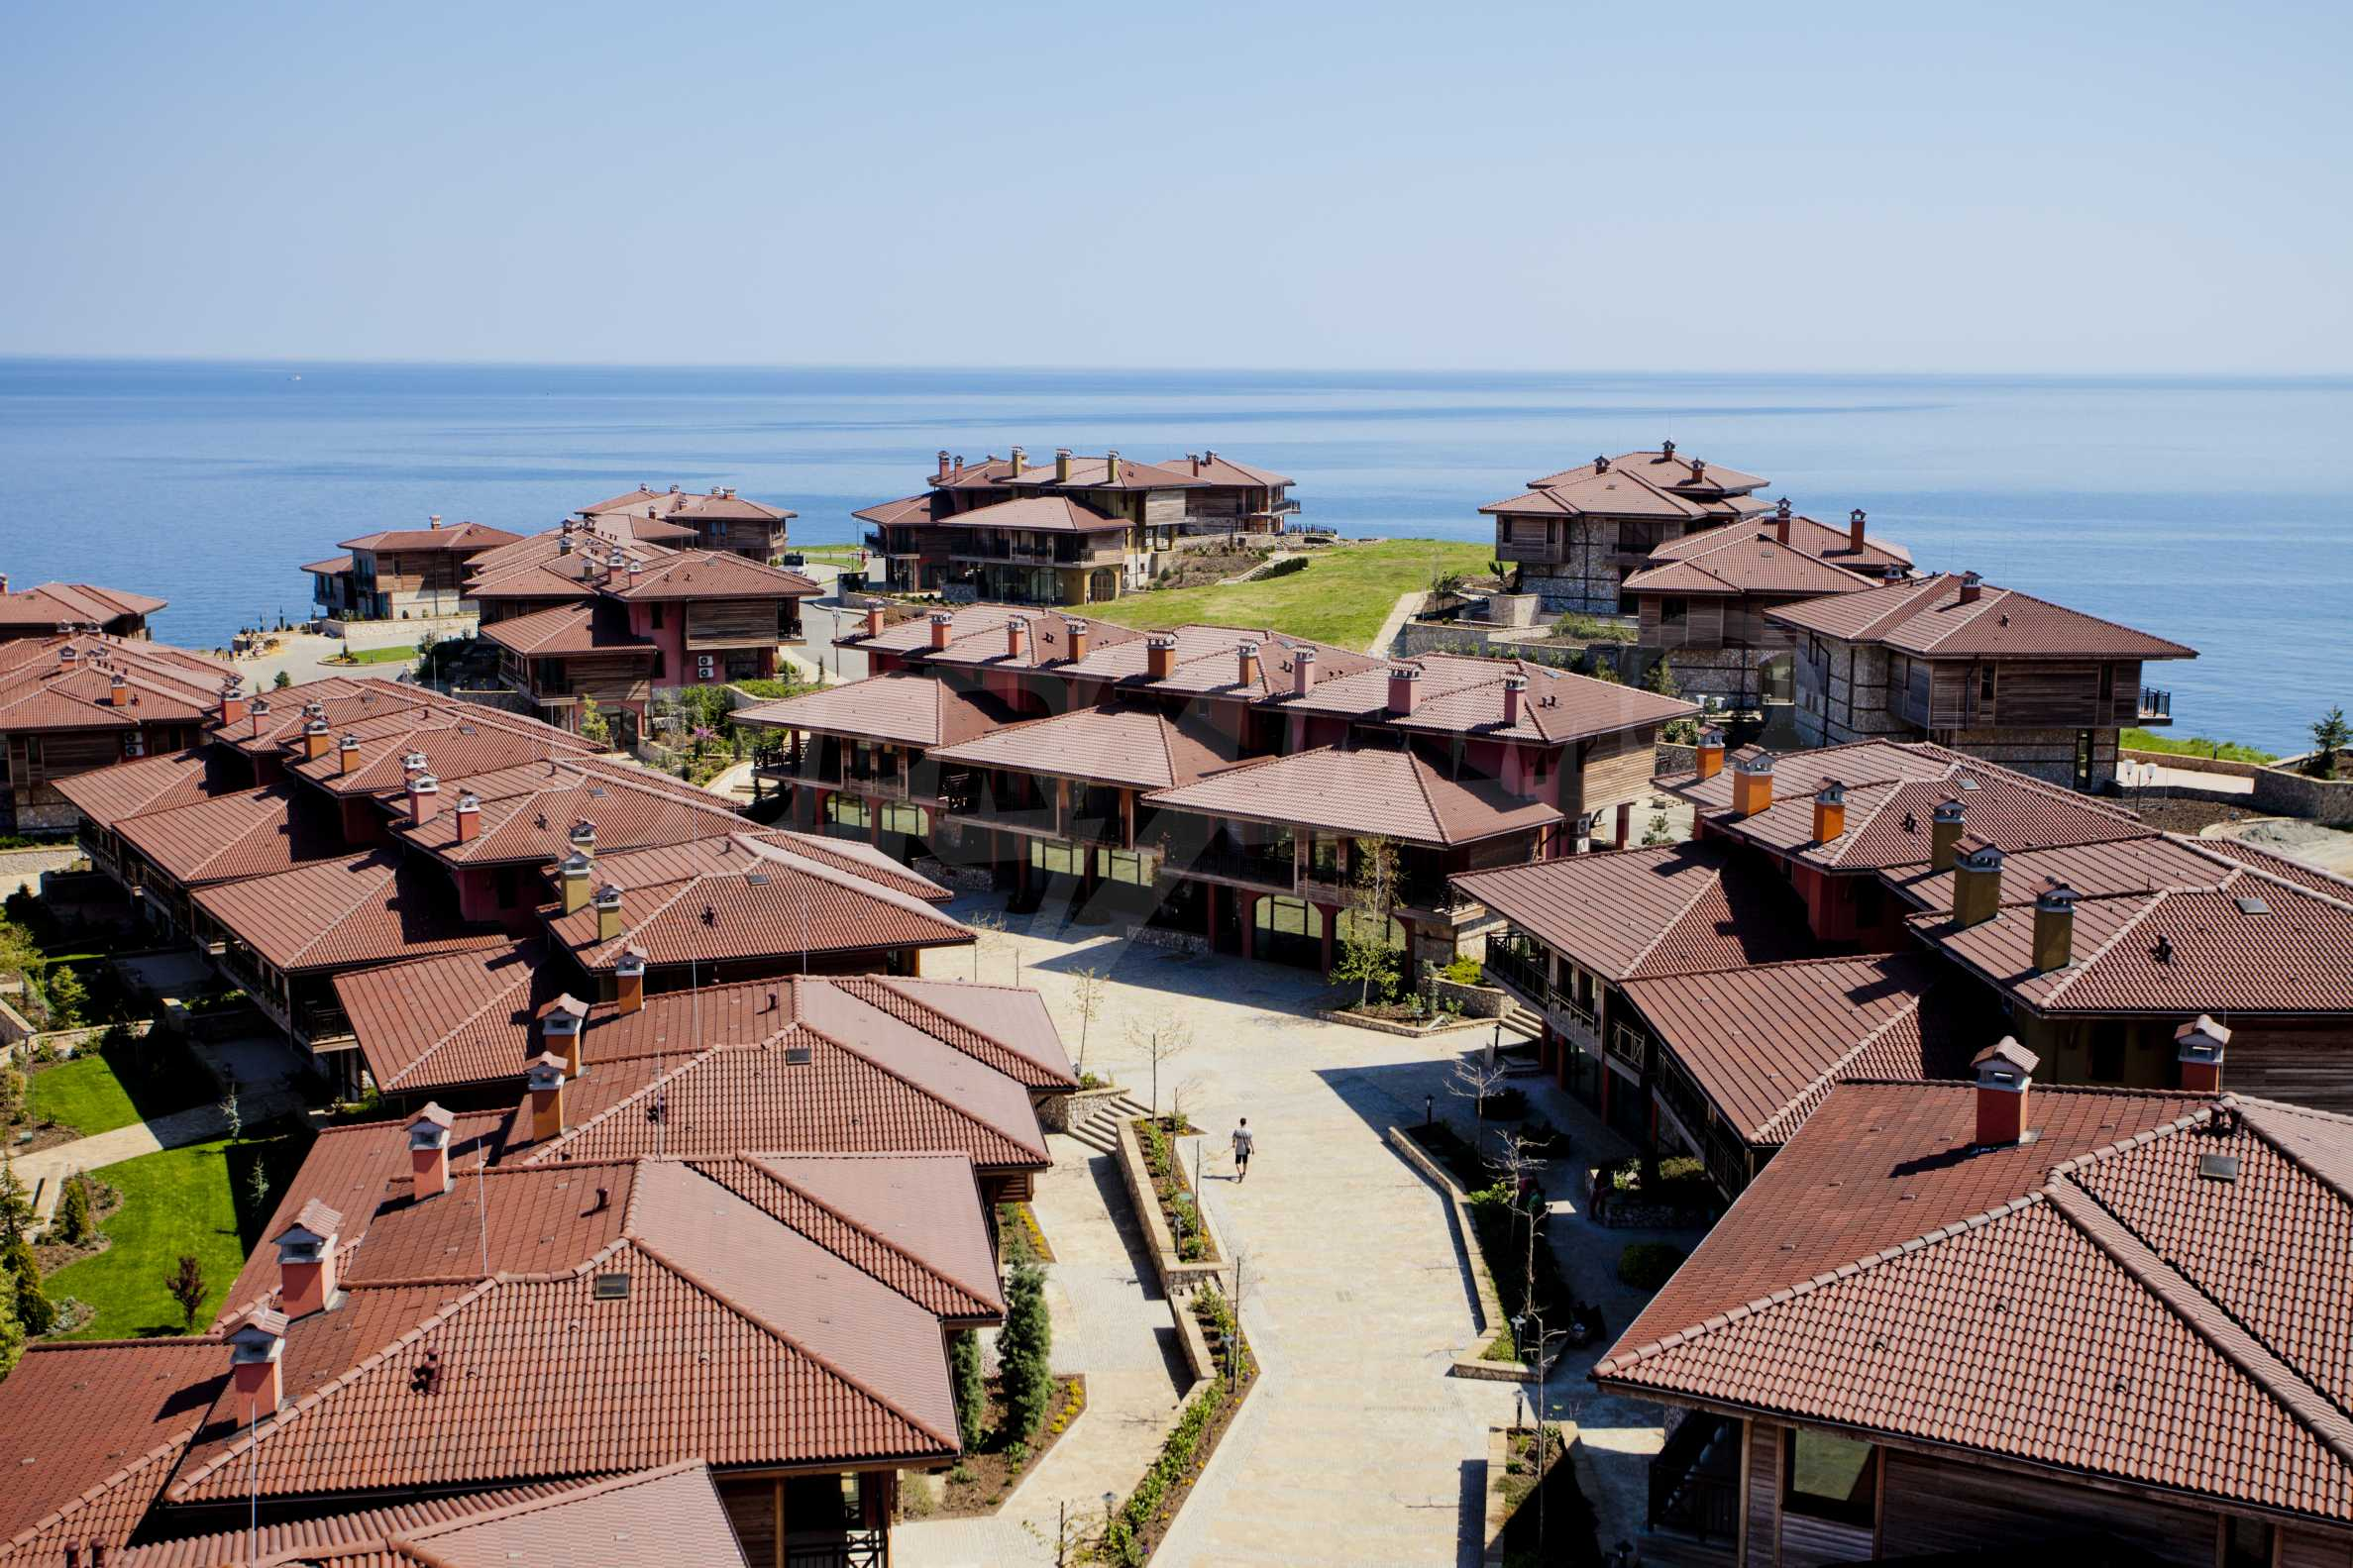 Sozopolis - unique coastal complex of duplex houses and apartments near Sozopol 42